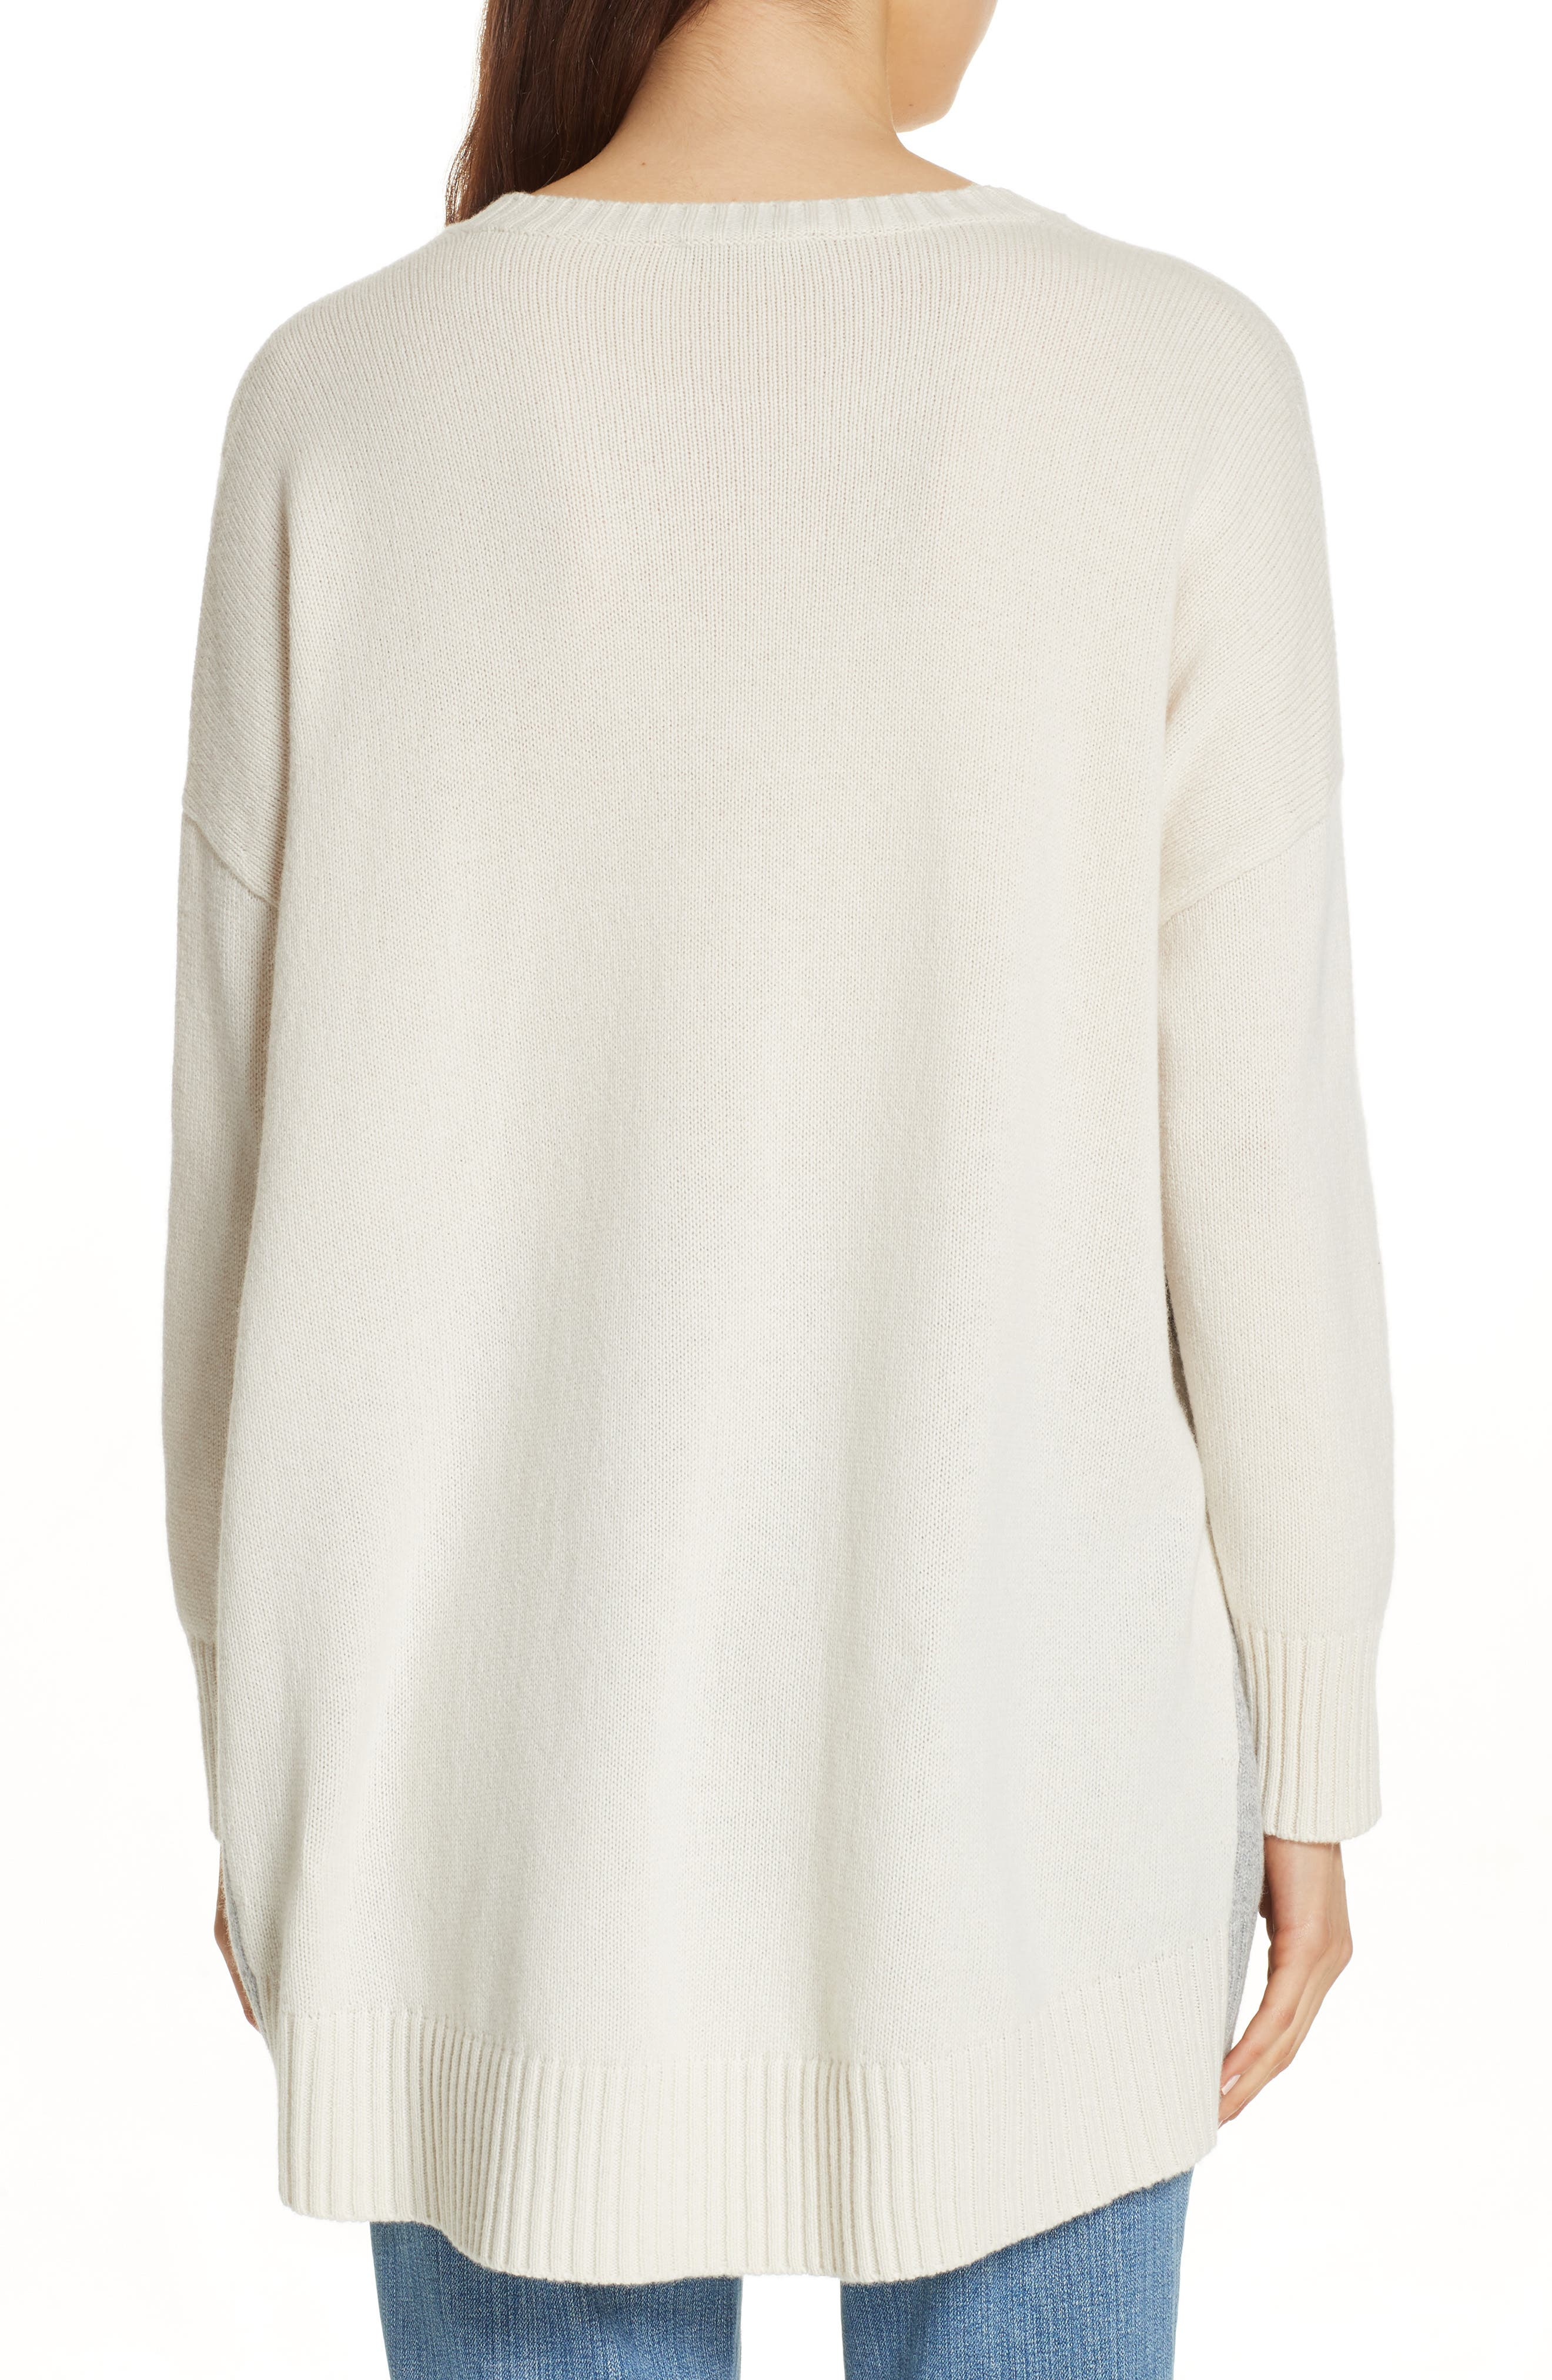 Oversize Cashmere & Wool Sweater,                             Alternate thumbnail 2, color,                             SOFT WHITE/ DARK PEARL